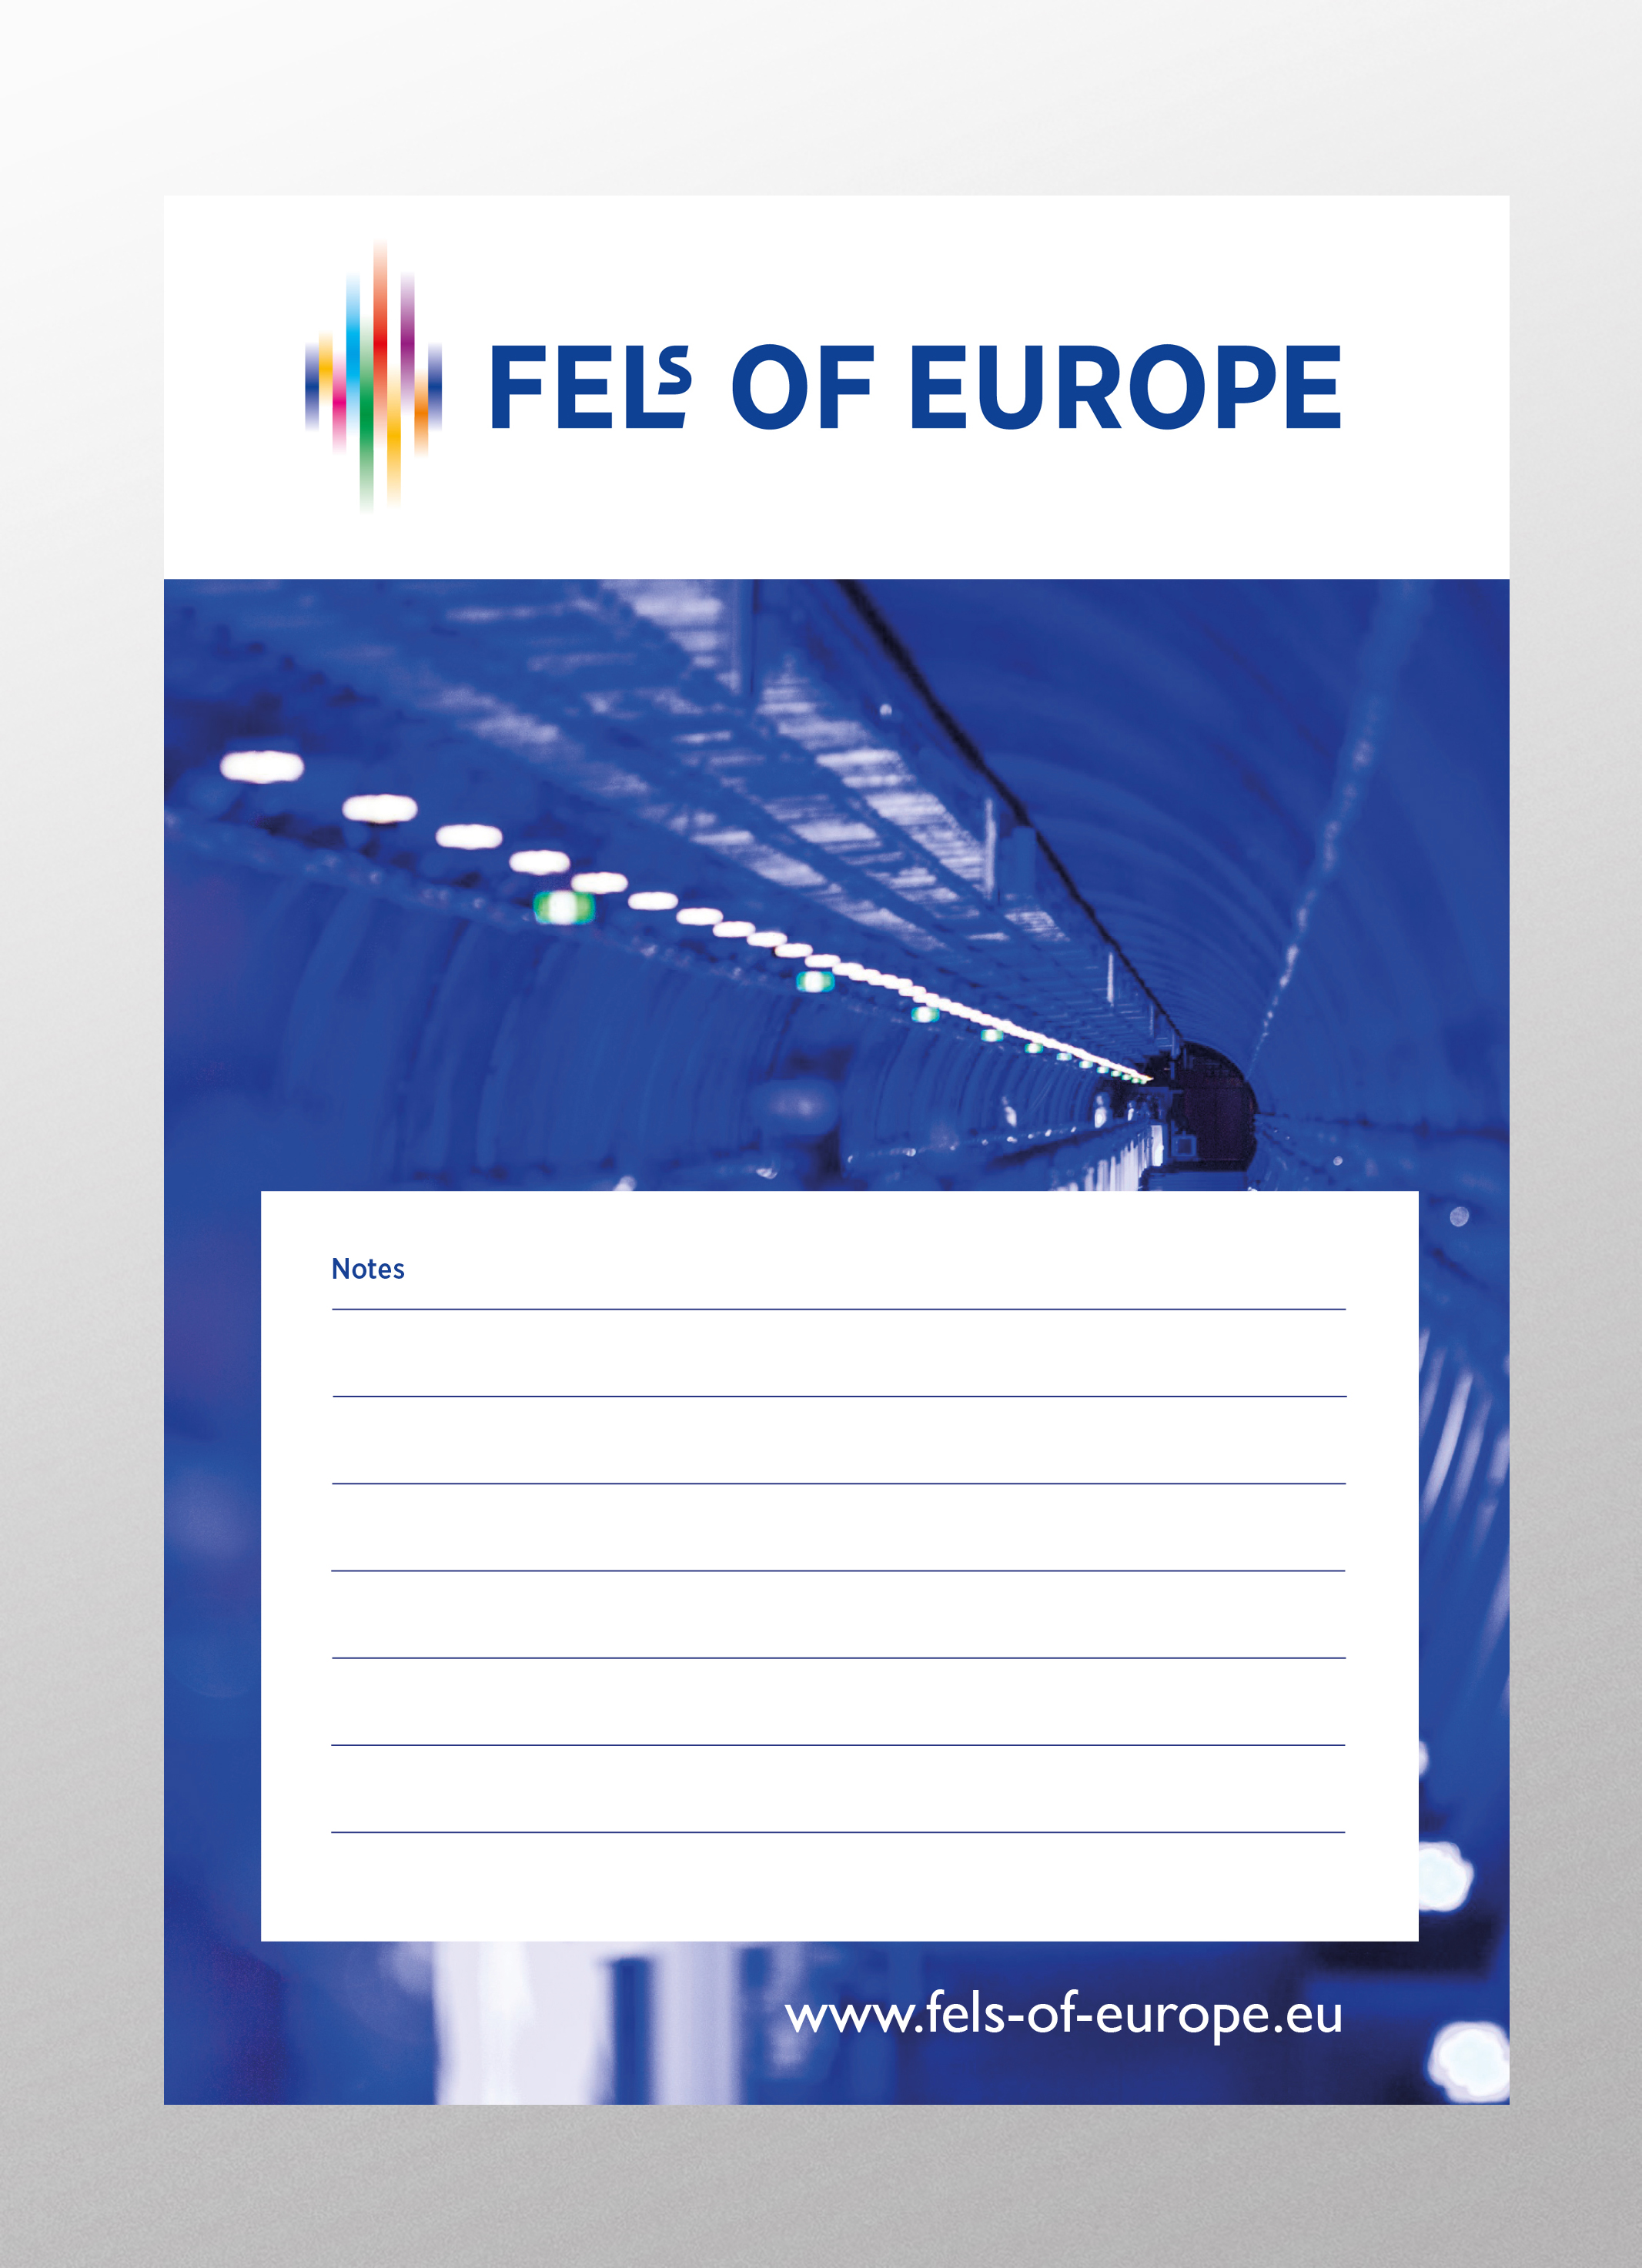 Welkom FELs OF EUROPE